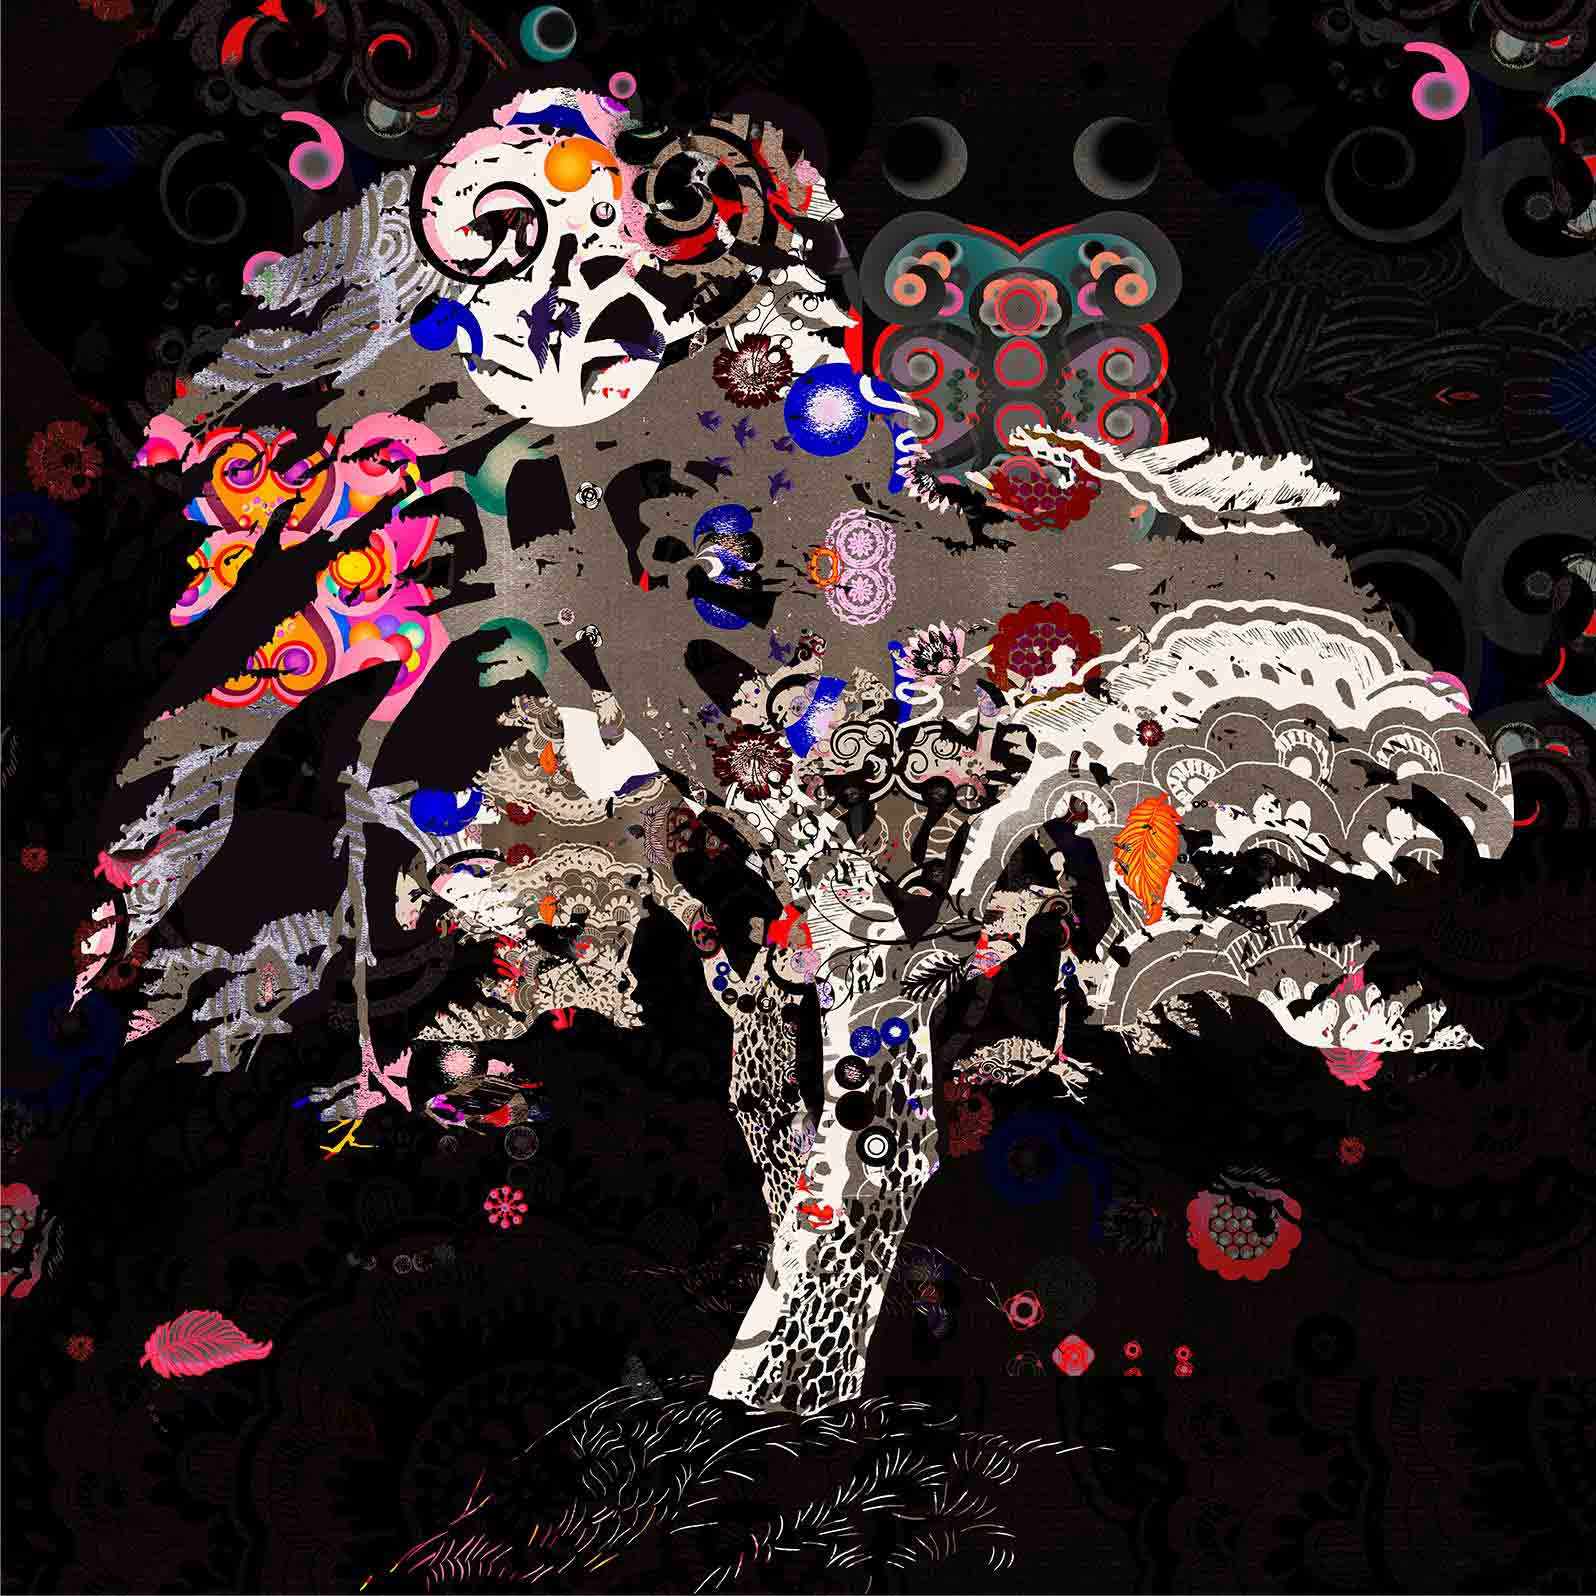 Anca Stefanescu | The Tree & The Noise Inside Digital Art, Limited Edition Print On Canvas